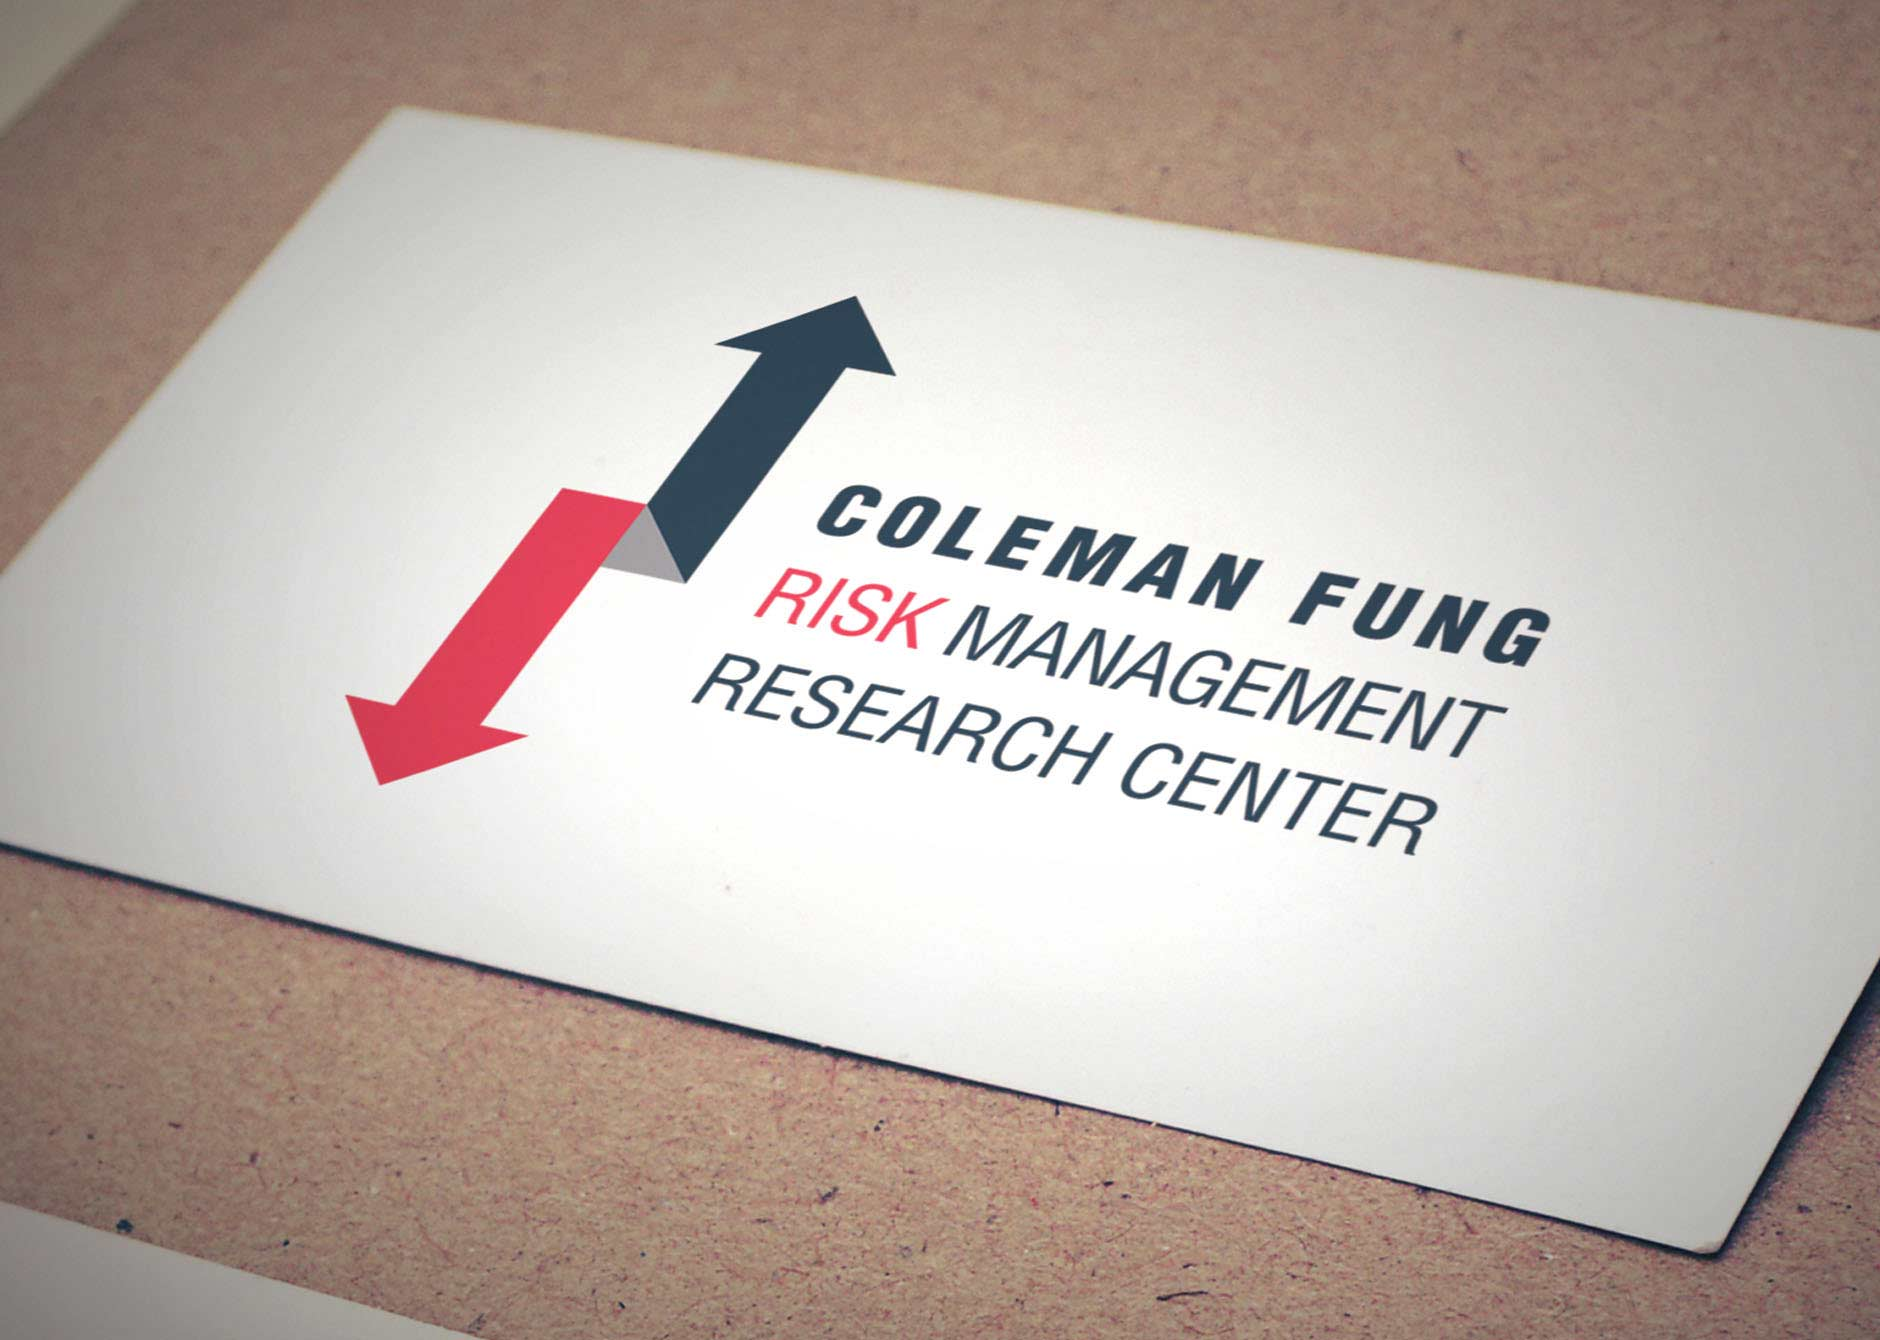 Coleman Fung Identity Design